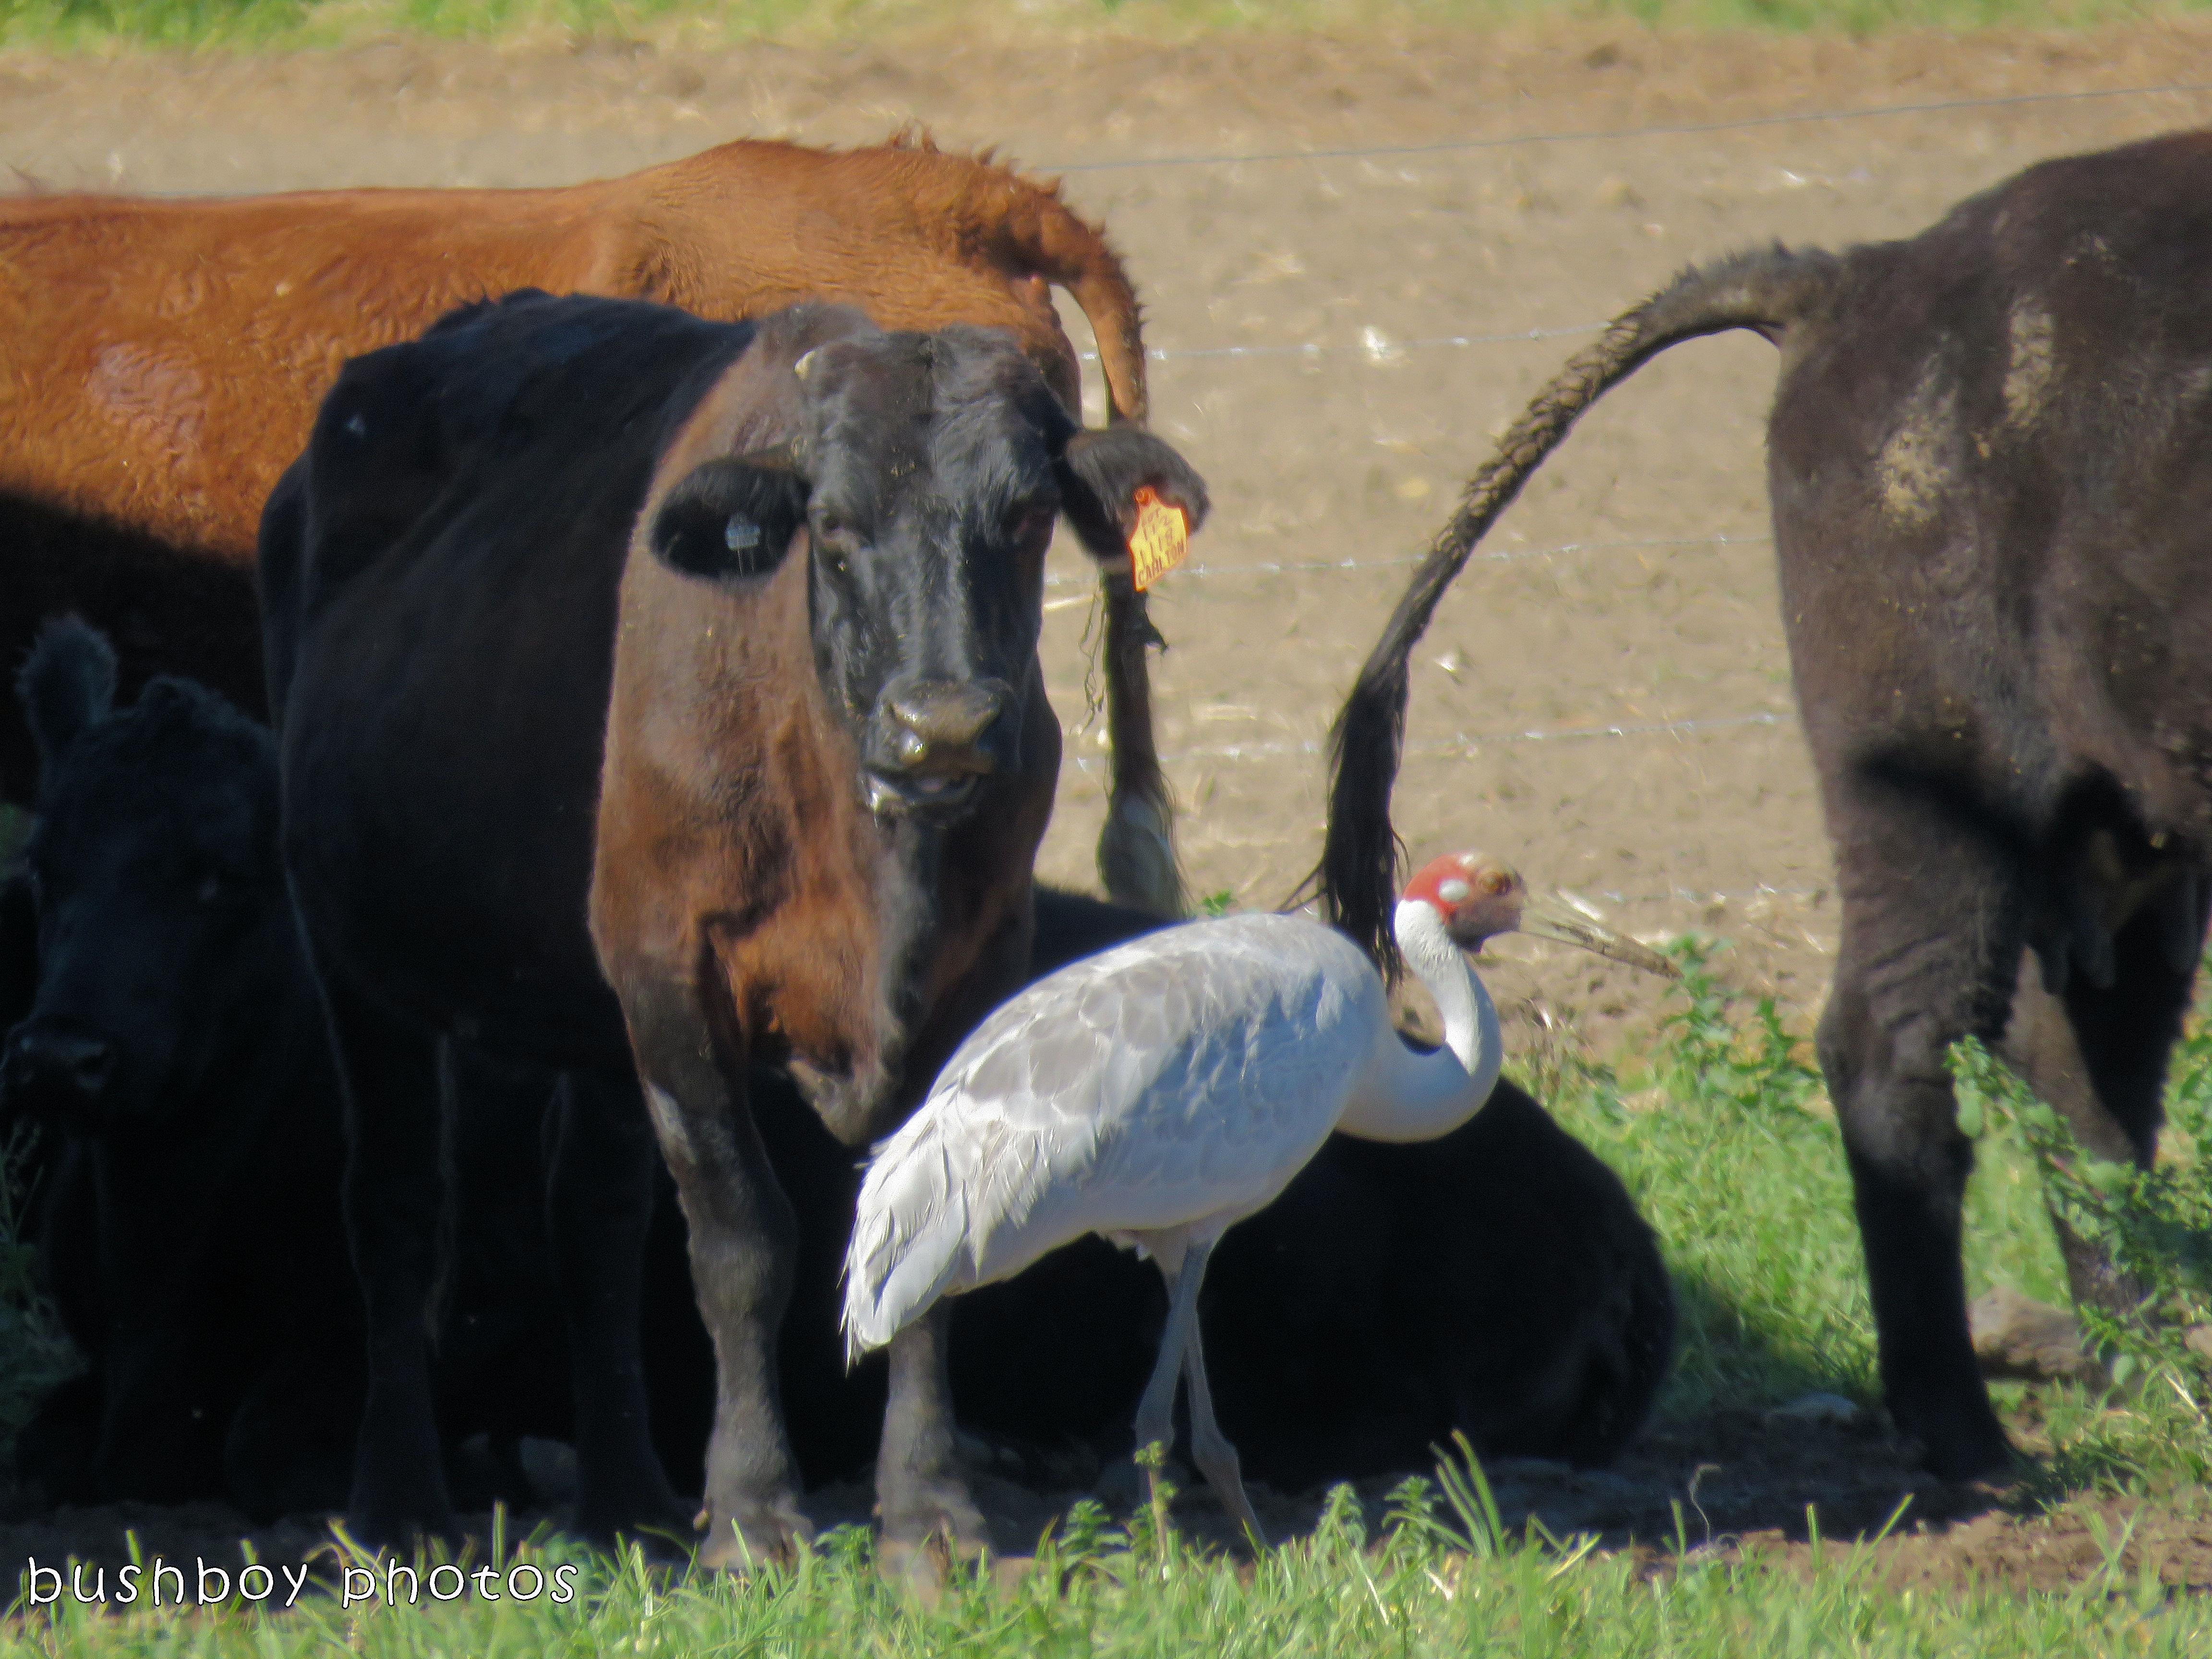 180222_face in the crowd_cow and brolga